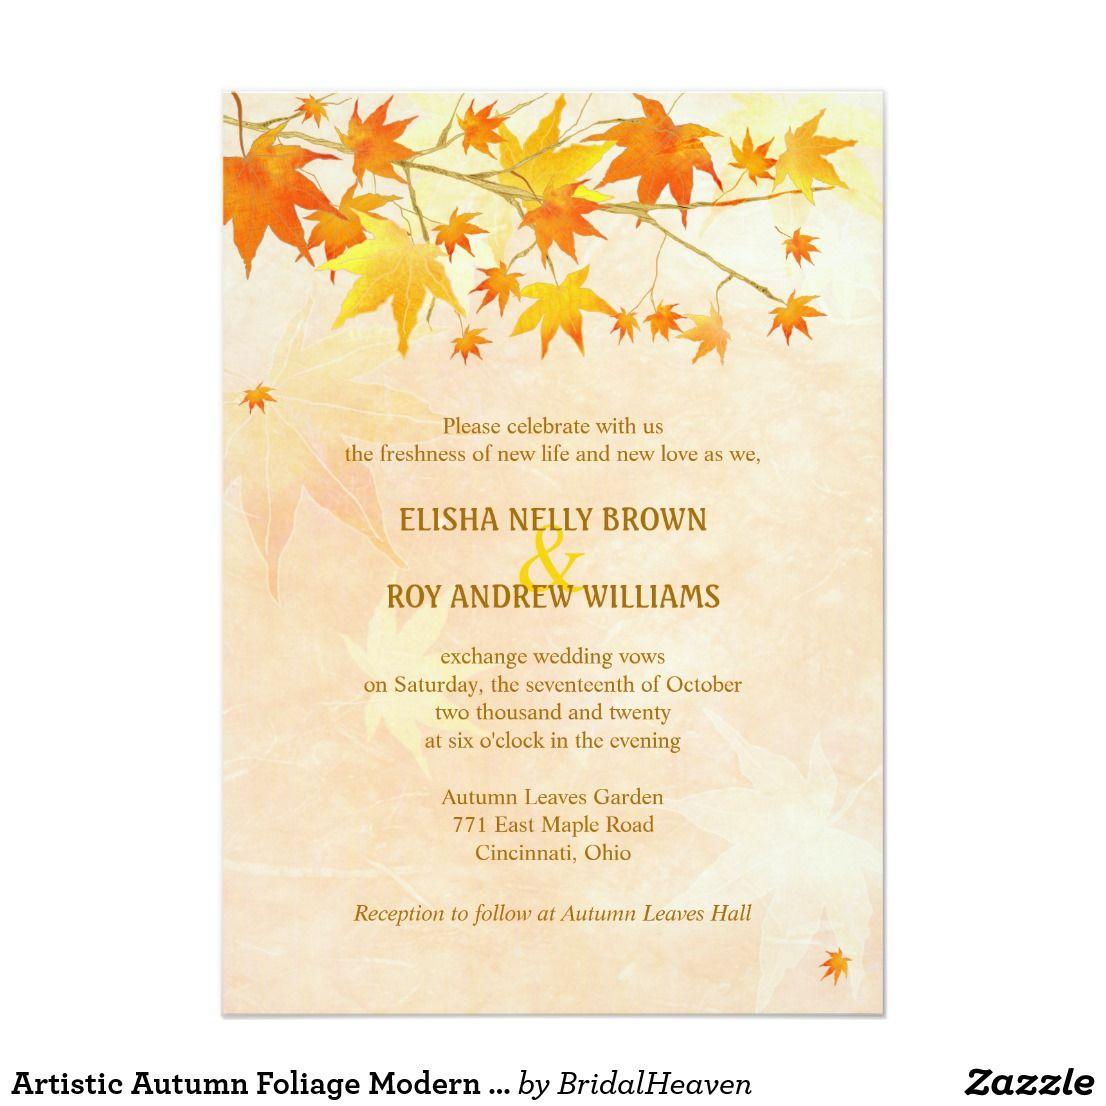 Artistic Autumn Foliage Modern Wedding Card Beautiful Maple Leaves Silhouettes In Fall Colors With A Rustic Textured Background Salmon Color Designed: Rustic Wedding Invitations Fall Colors At Reisefeber.org